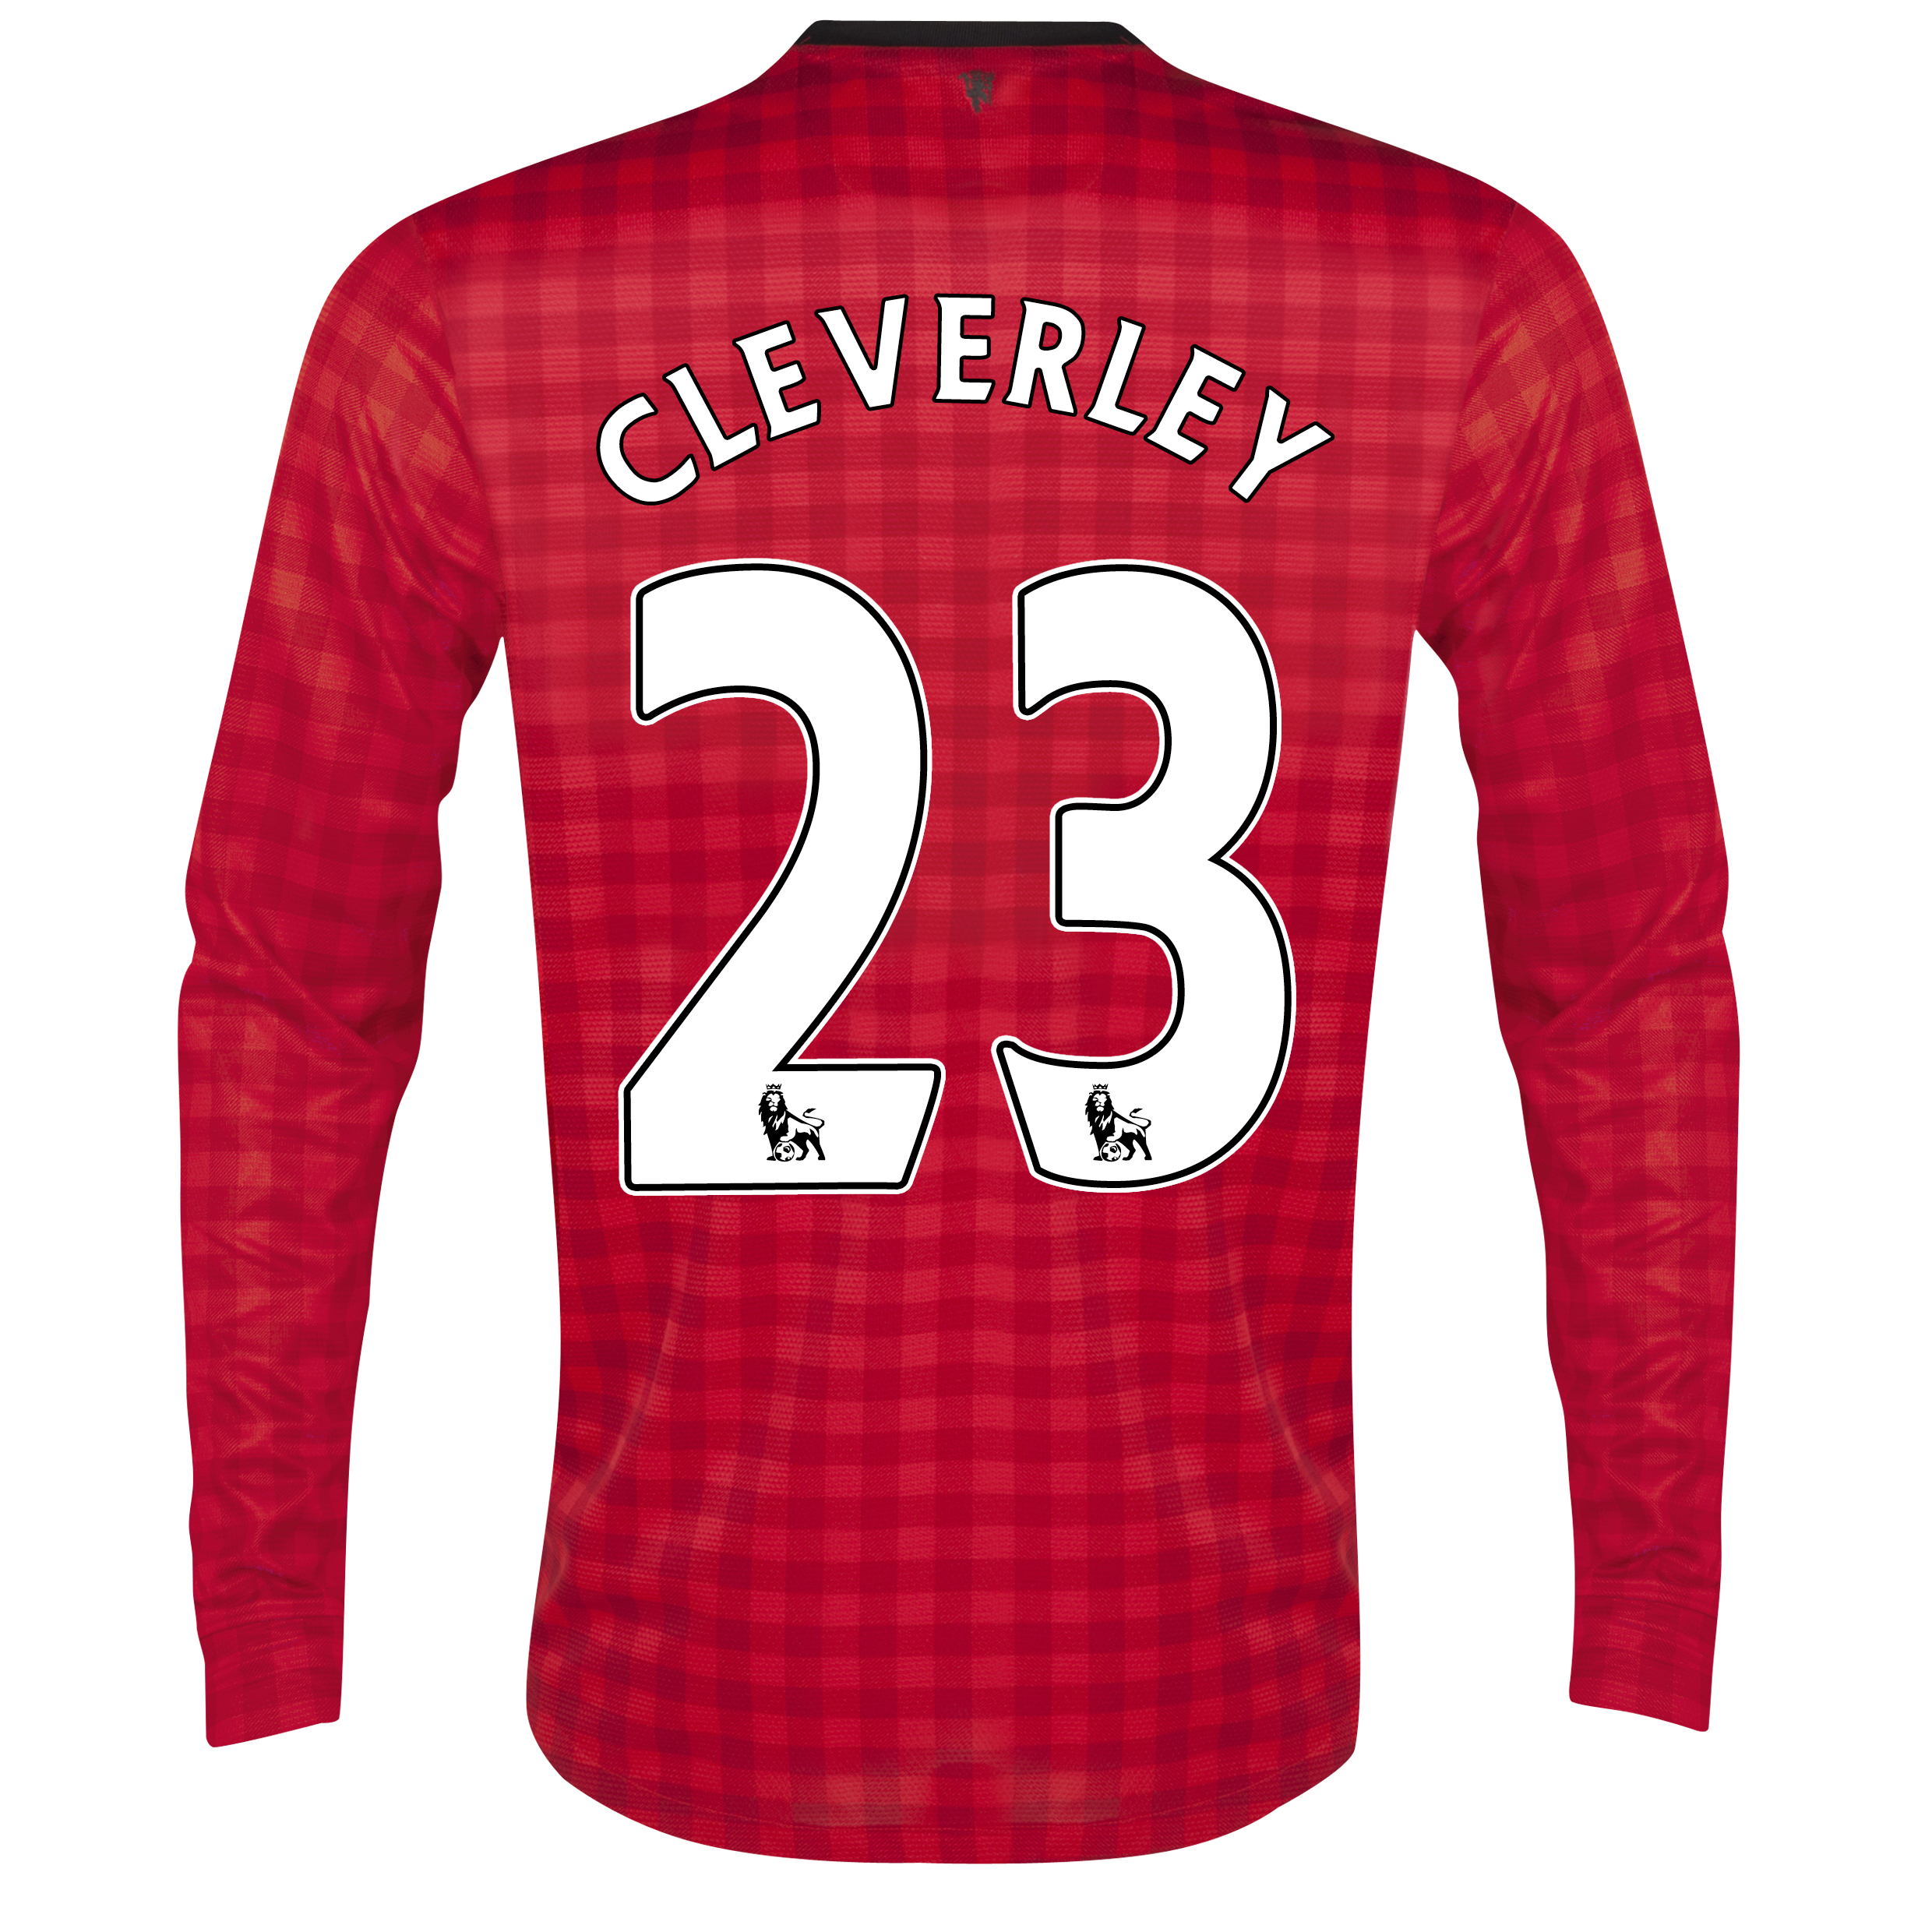 Manchester United Home Shirt 2012/13 - Long Sleeved with Cleverley 23 printing